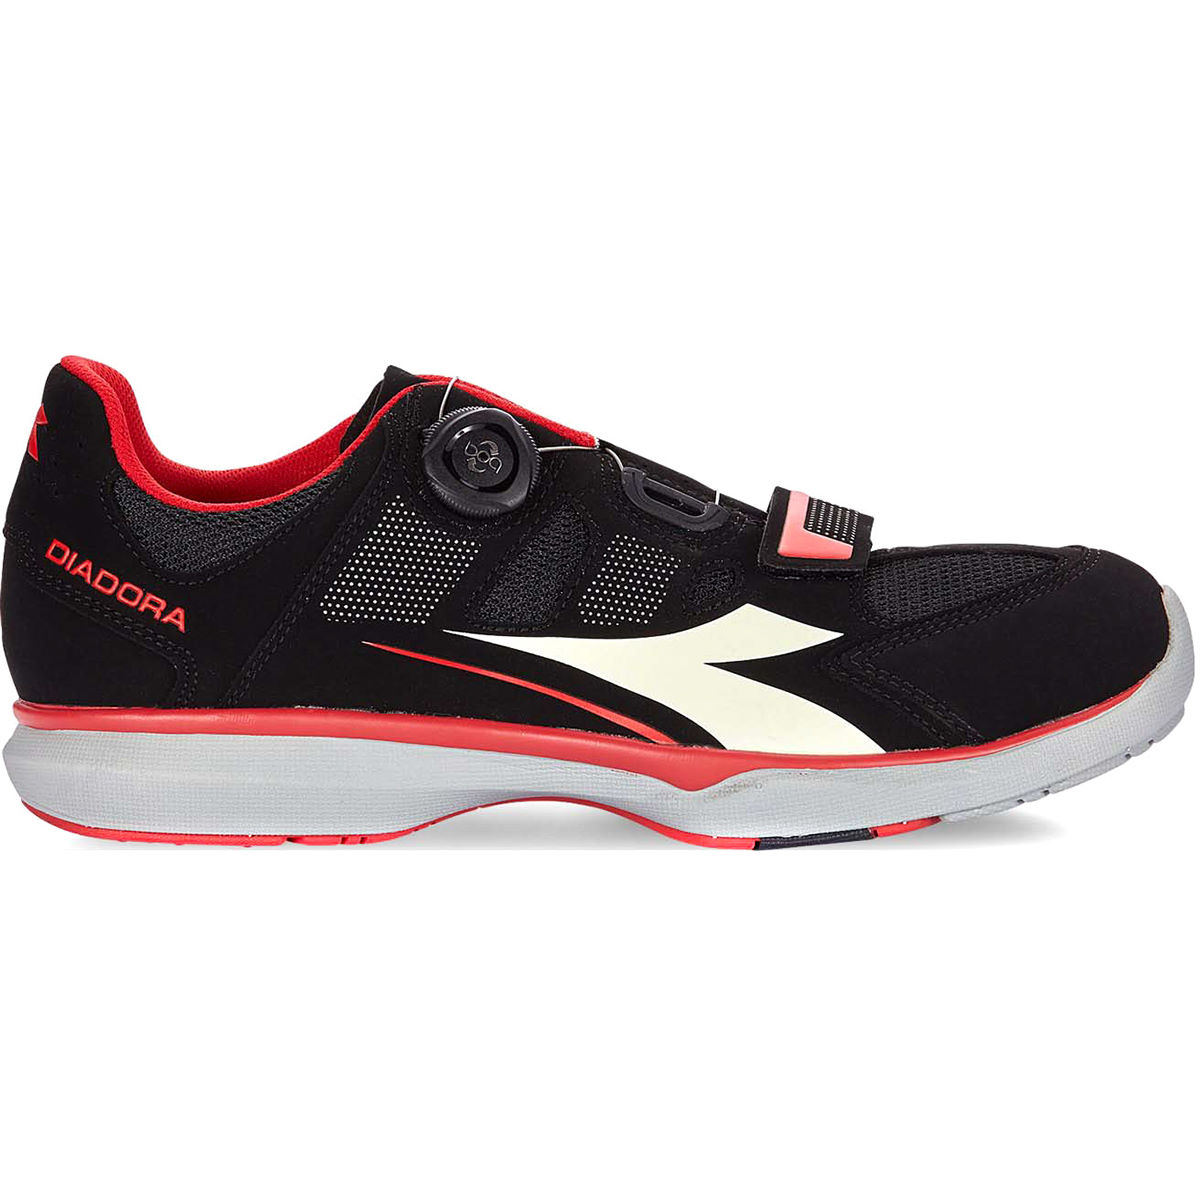 Diadora Gym Road Shoes - Zapatillas de ciclismo